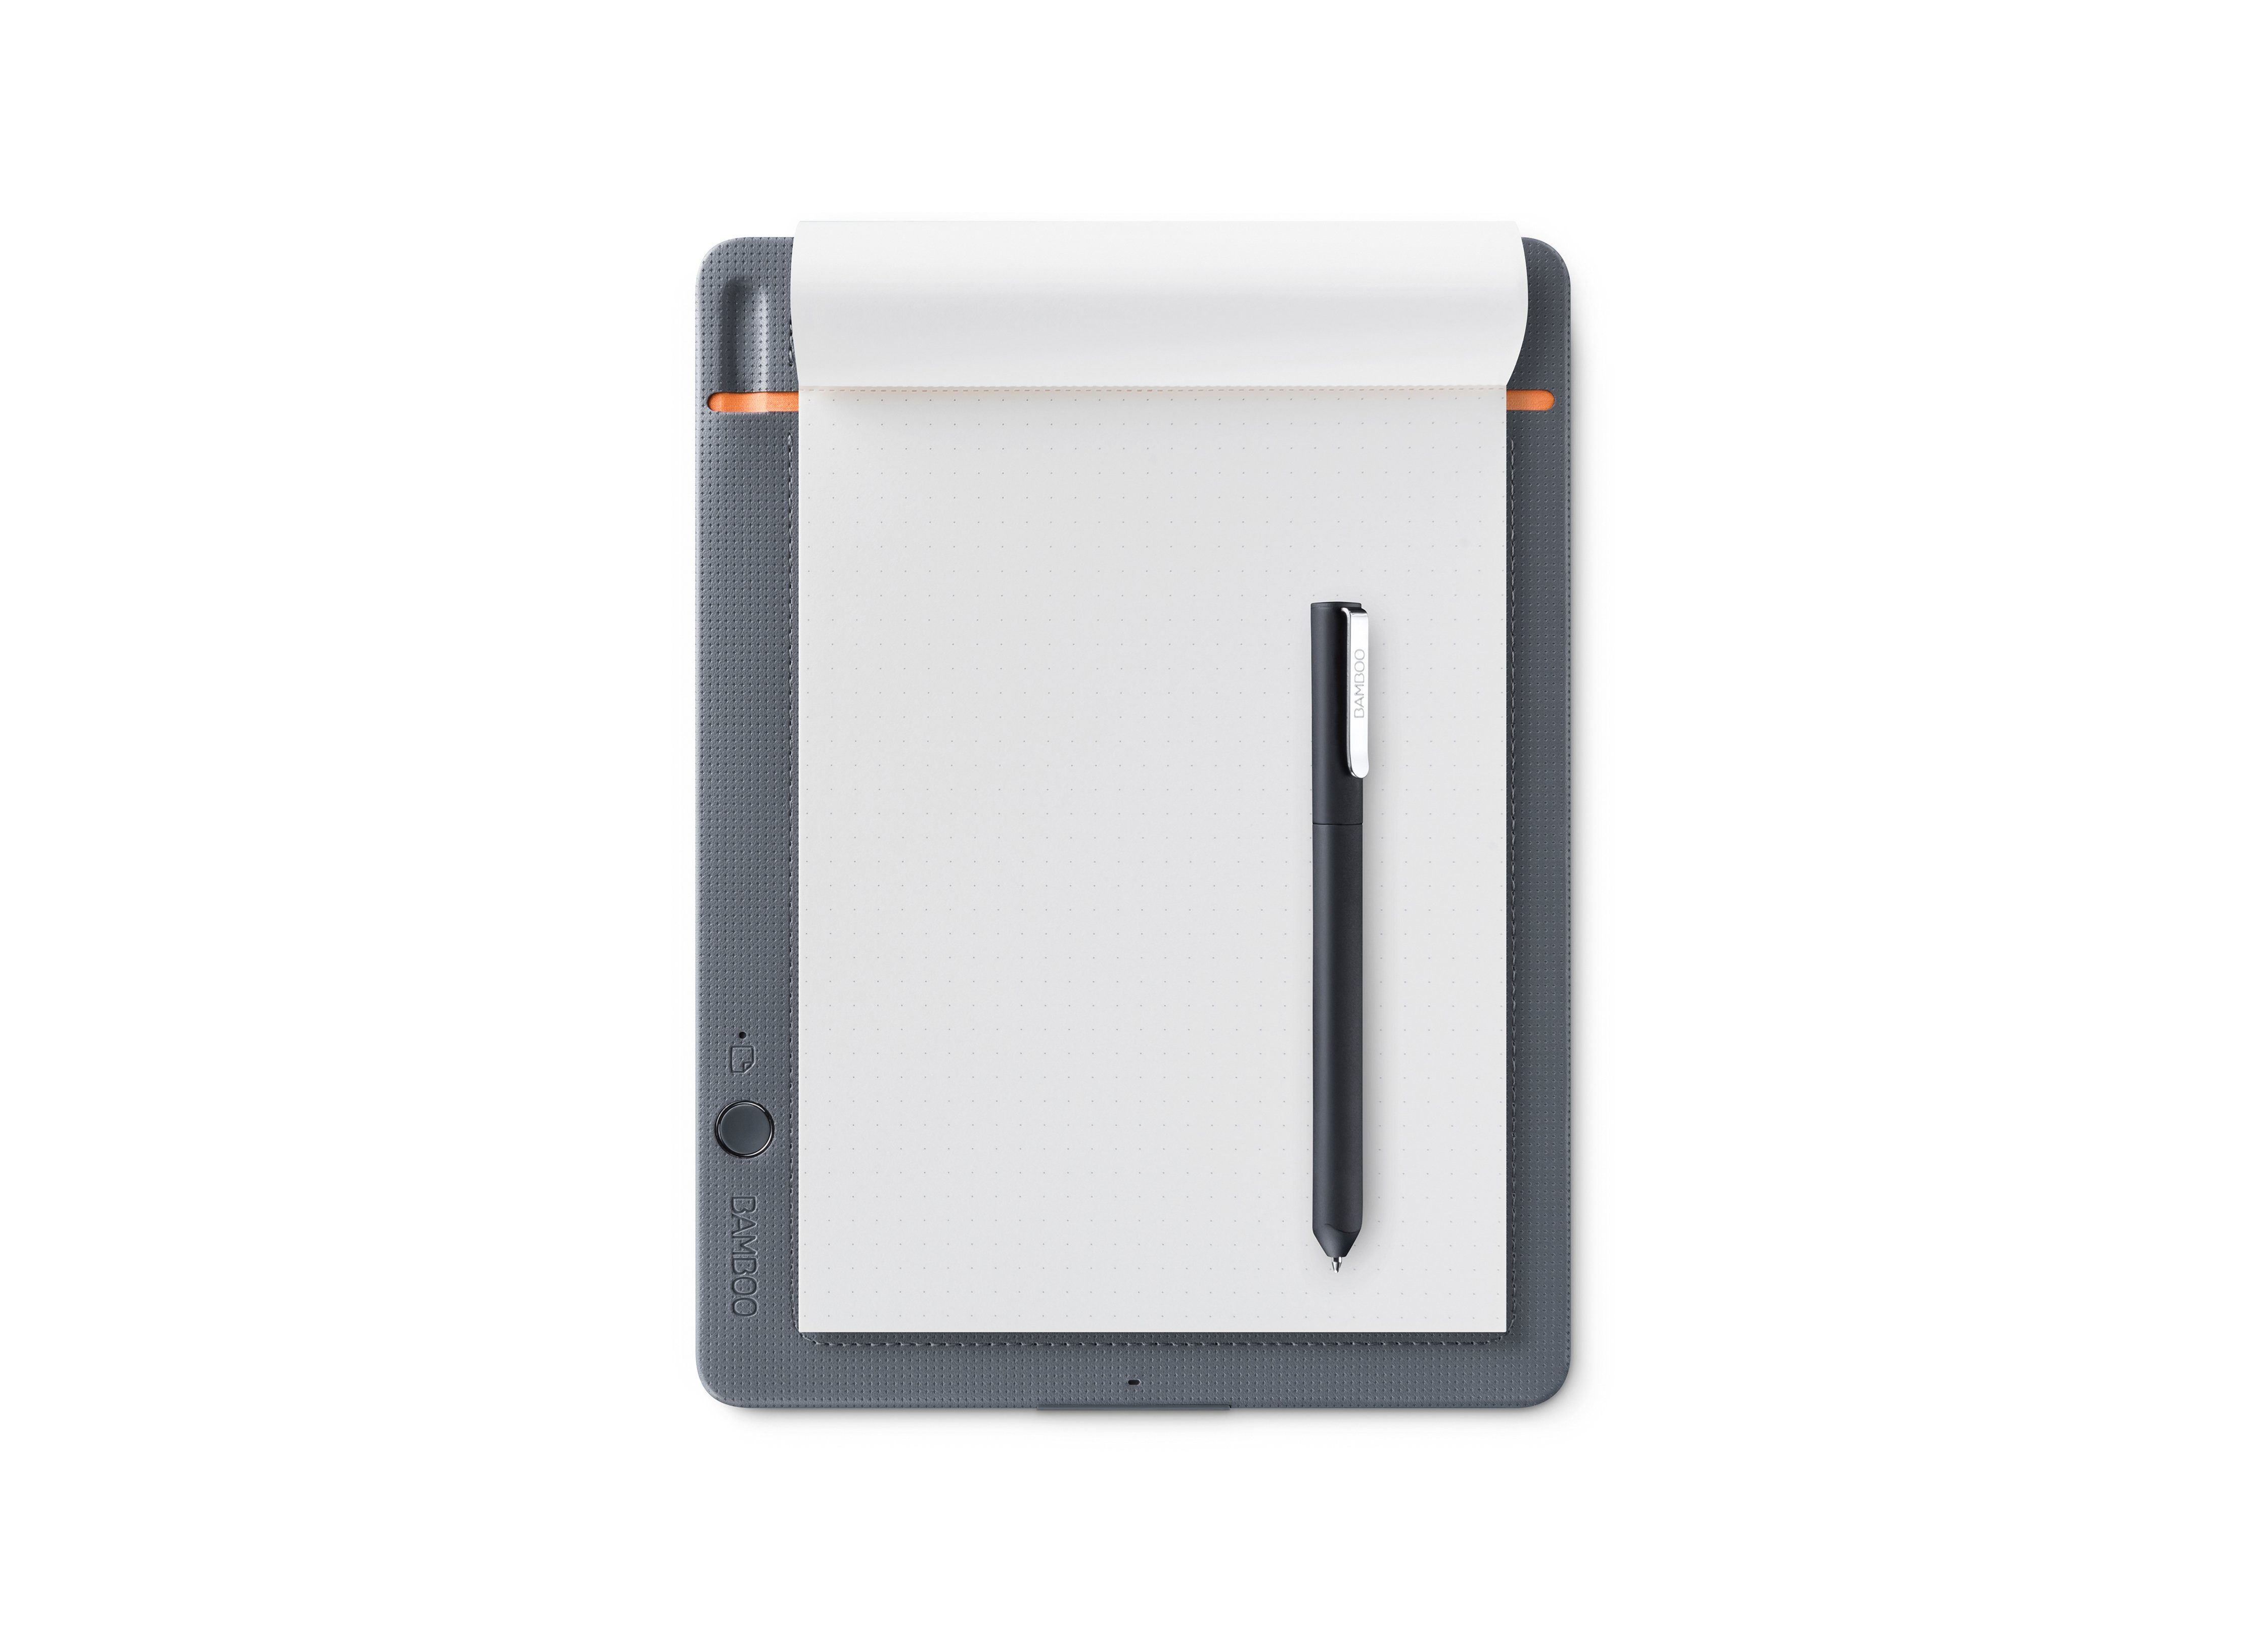 Wacom Stift-/Touchtablet »BAMBOO SLATE SMALL«